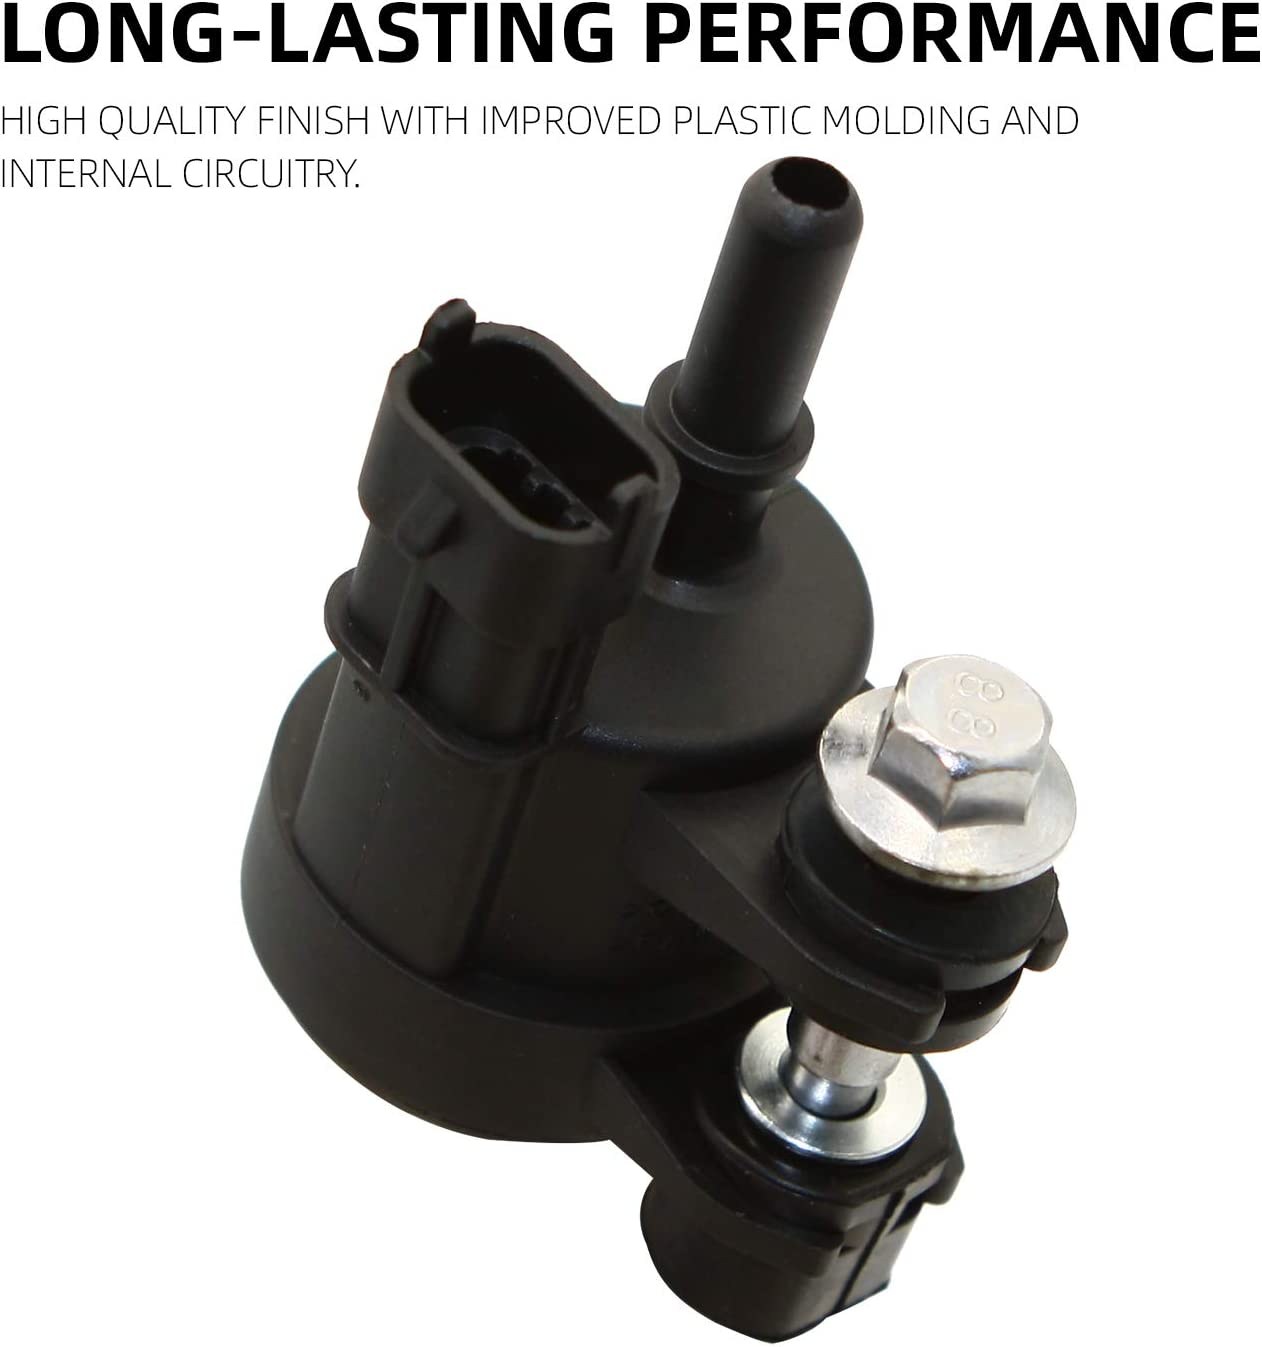 12610560 Vapor Canister Purge Valve Solenoid Fits For GMC Acadia ...